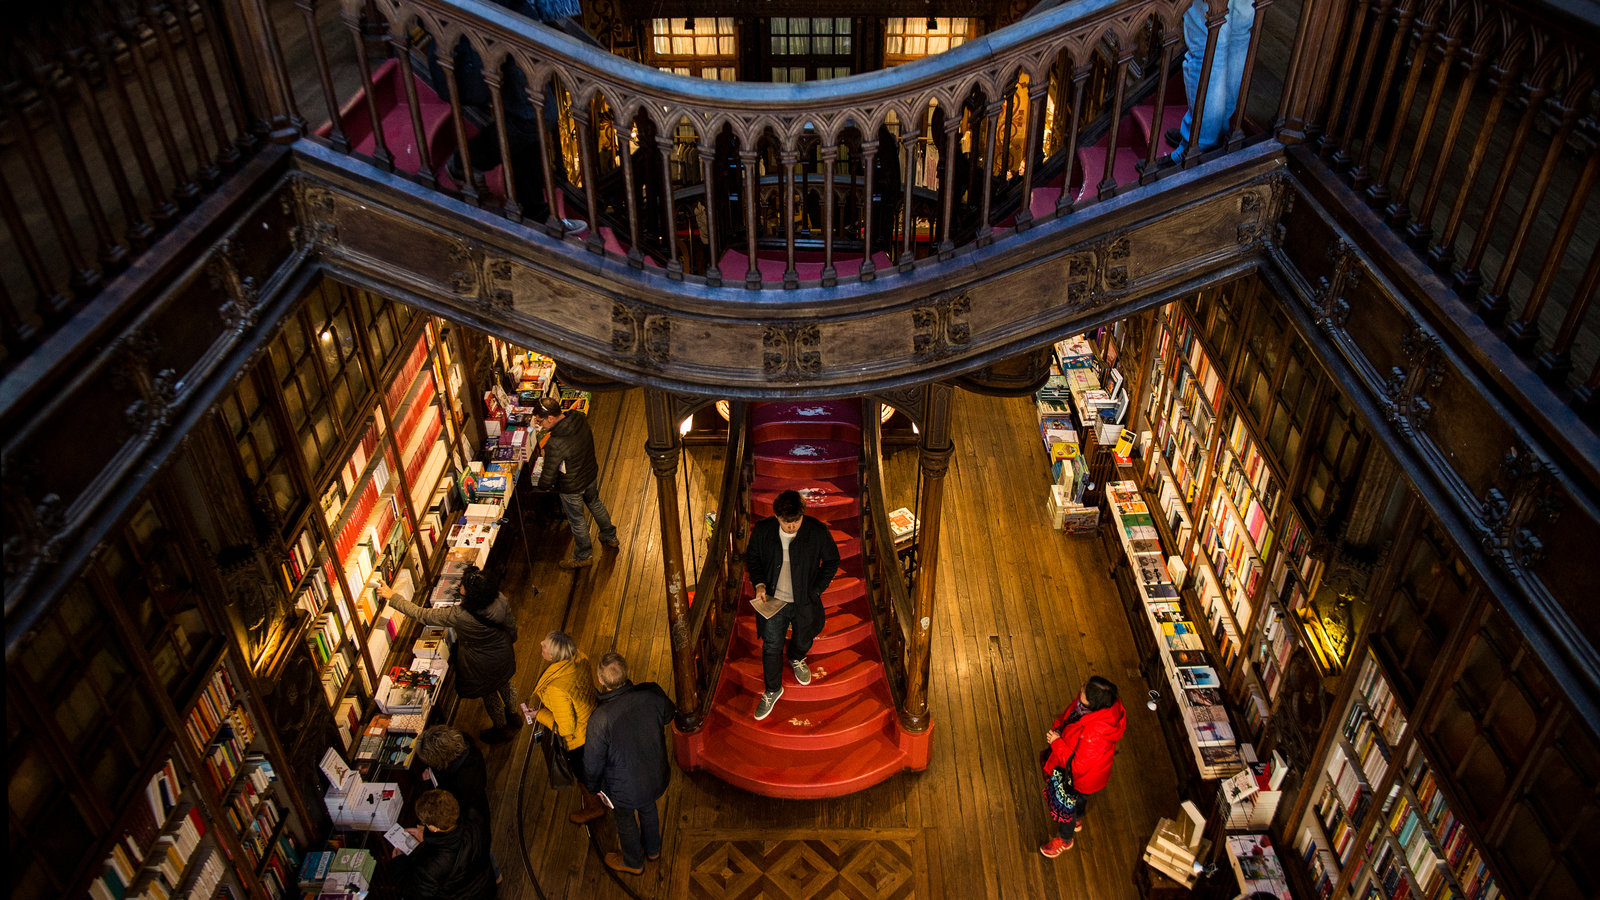 Librería Lello E Irmao Room For Books And Magic